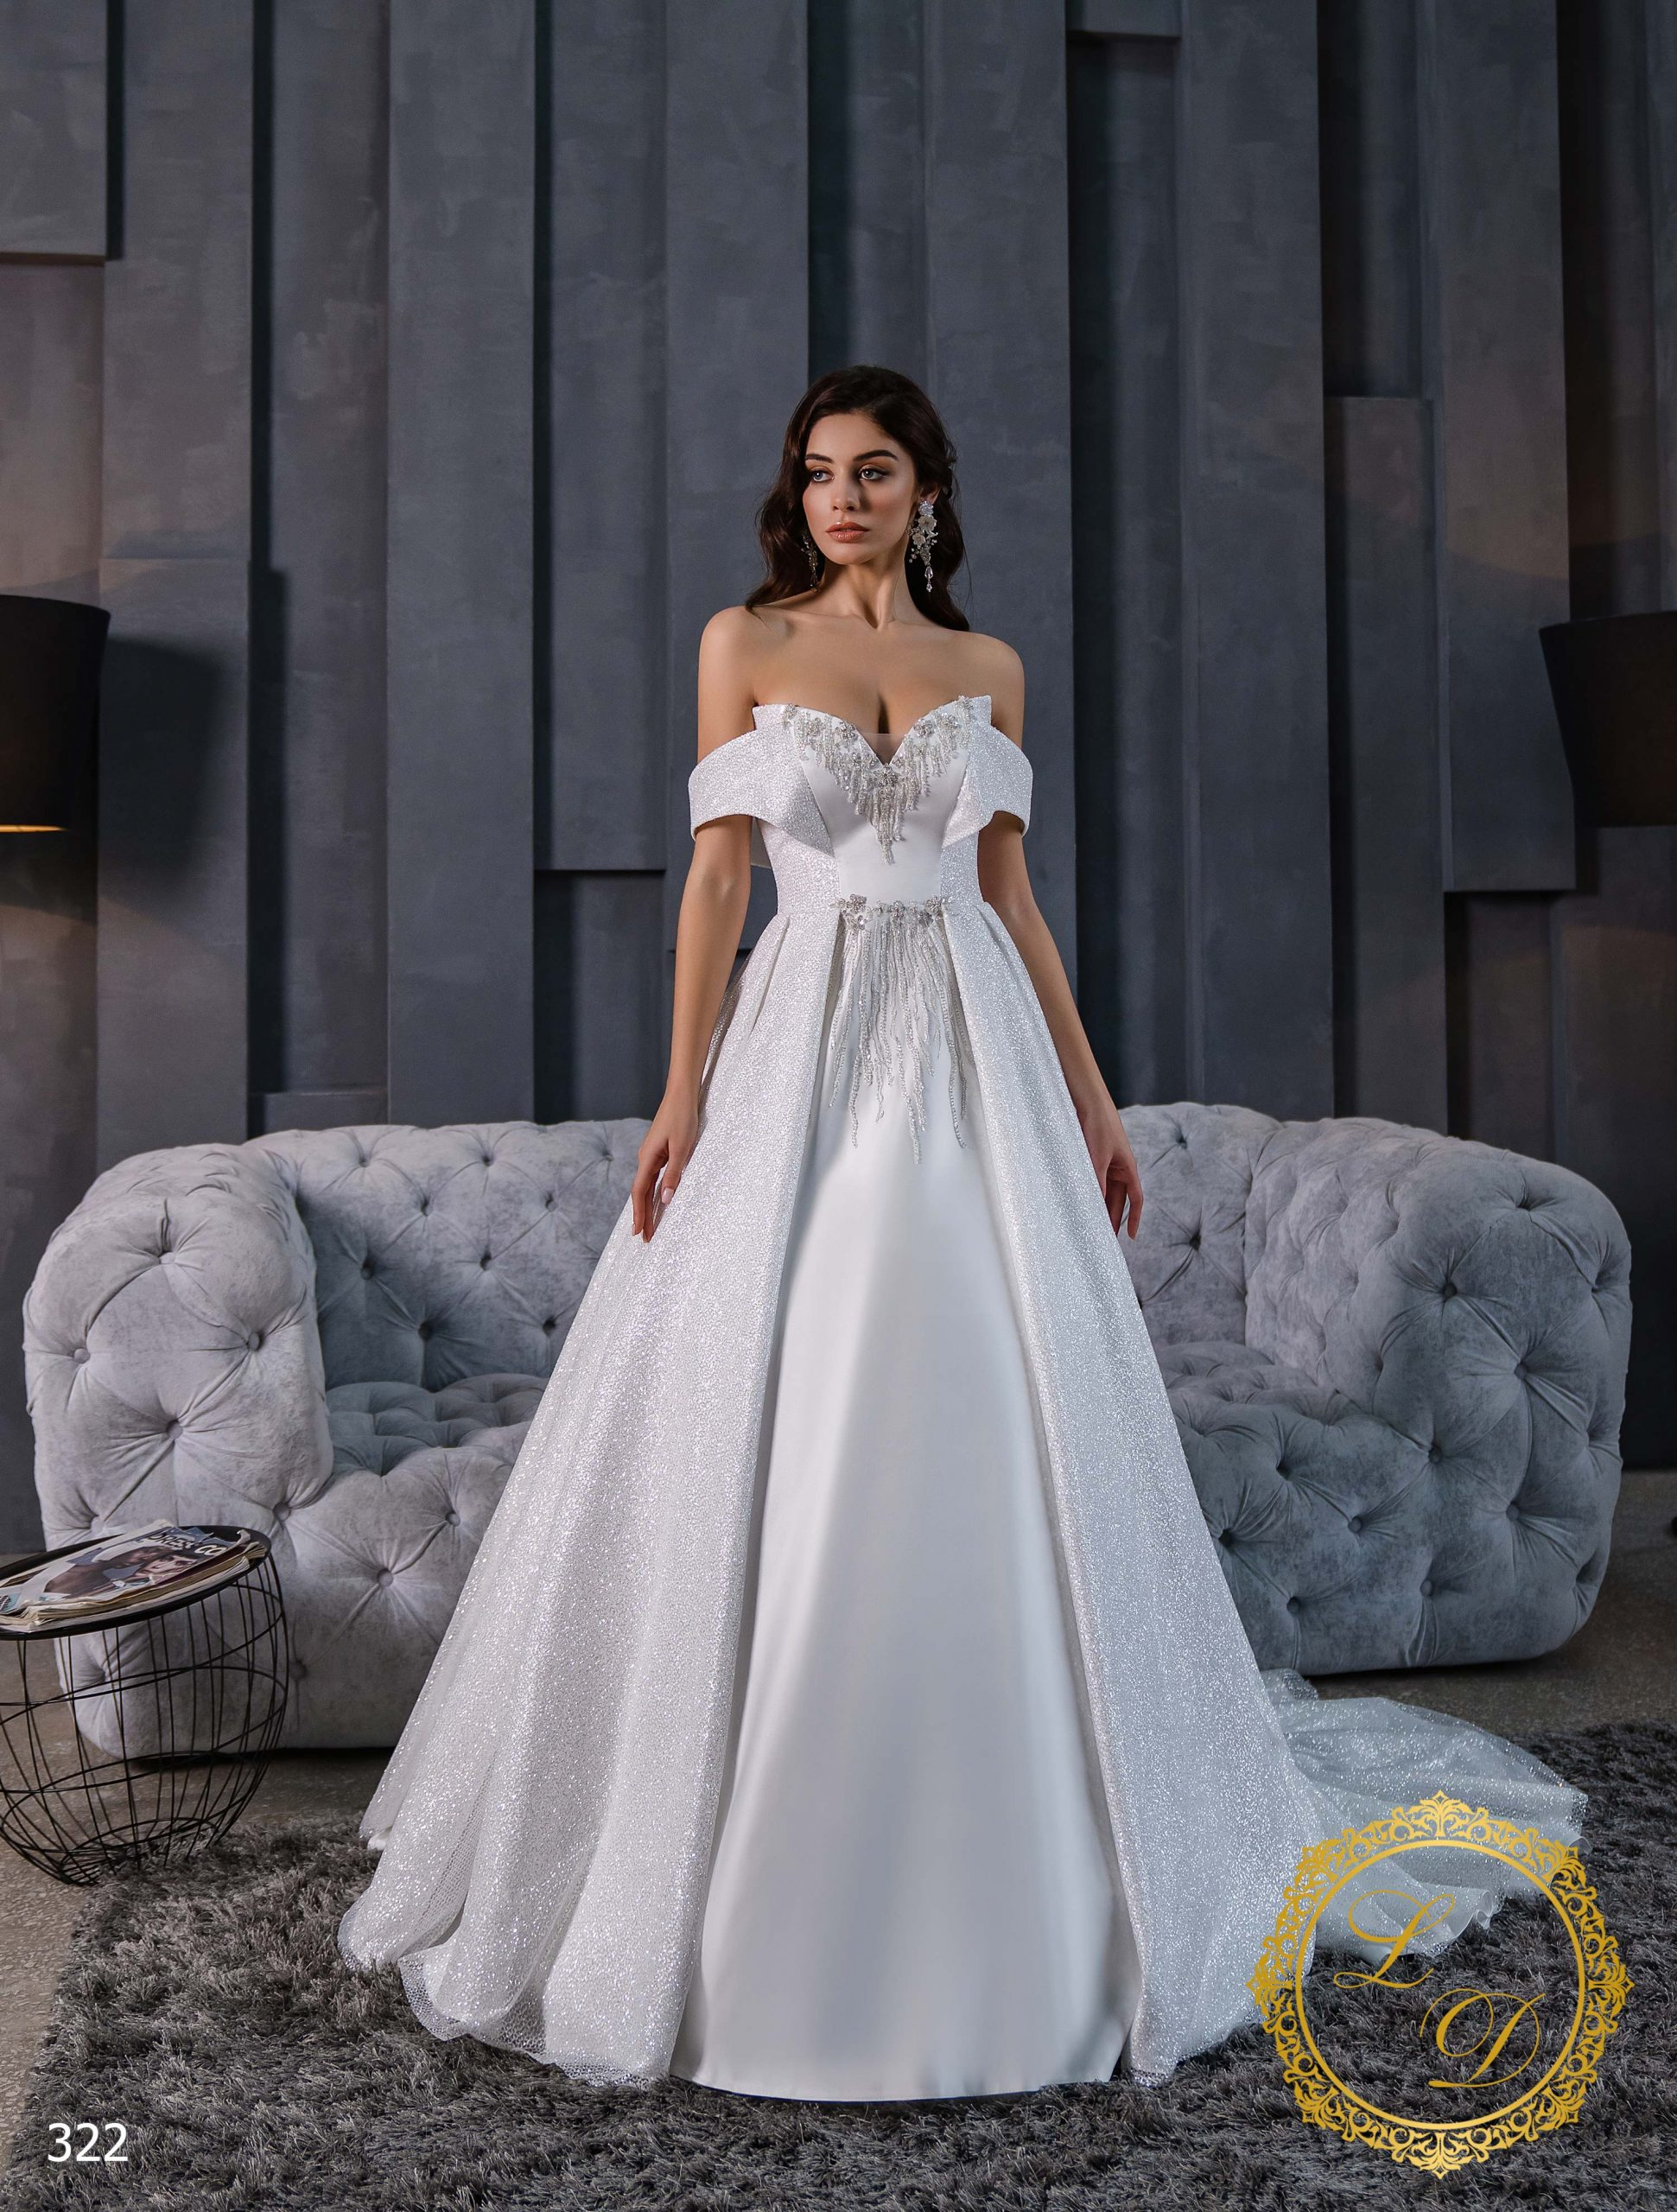 Wedding Dress Lady Di 322-1